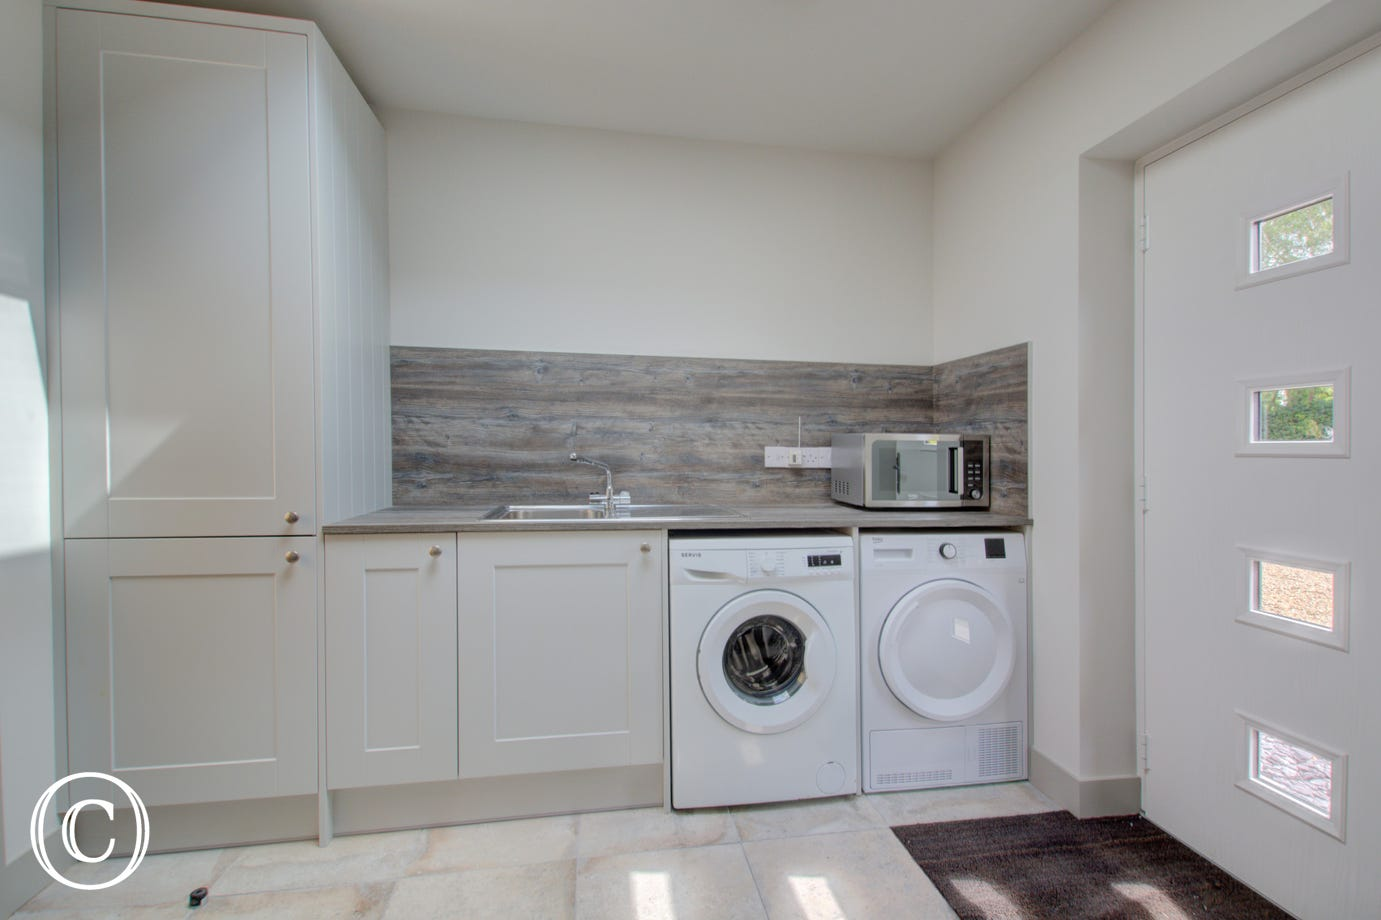 Utility room with fitted units, washing machine & tumble dryer